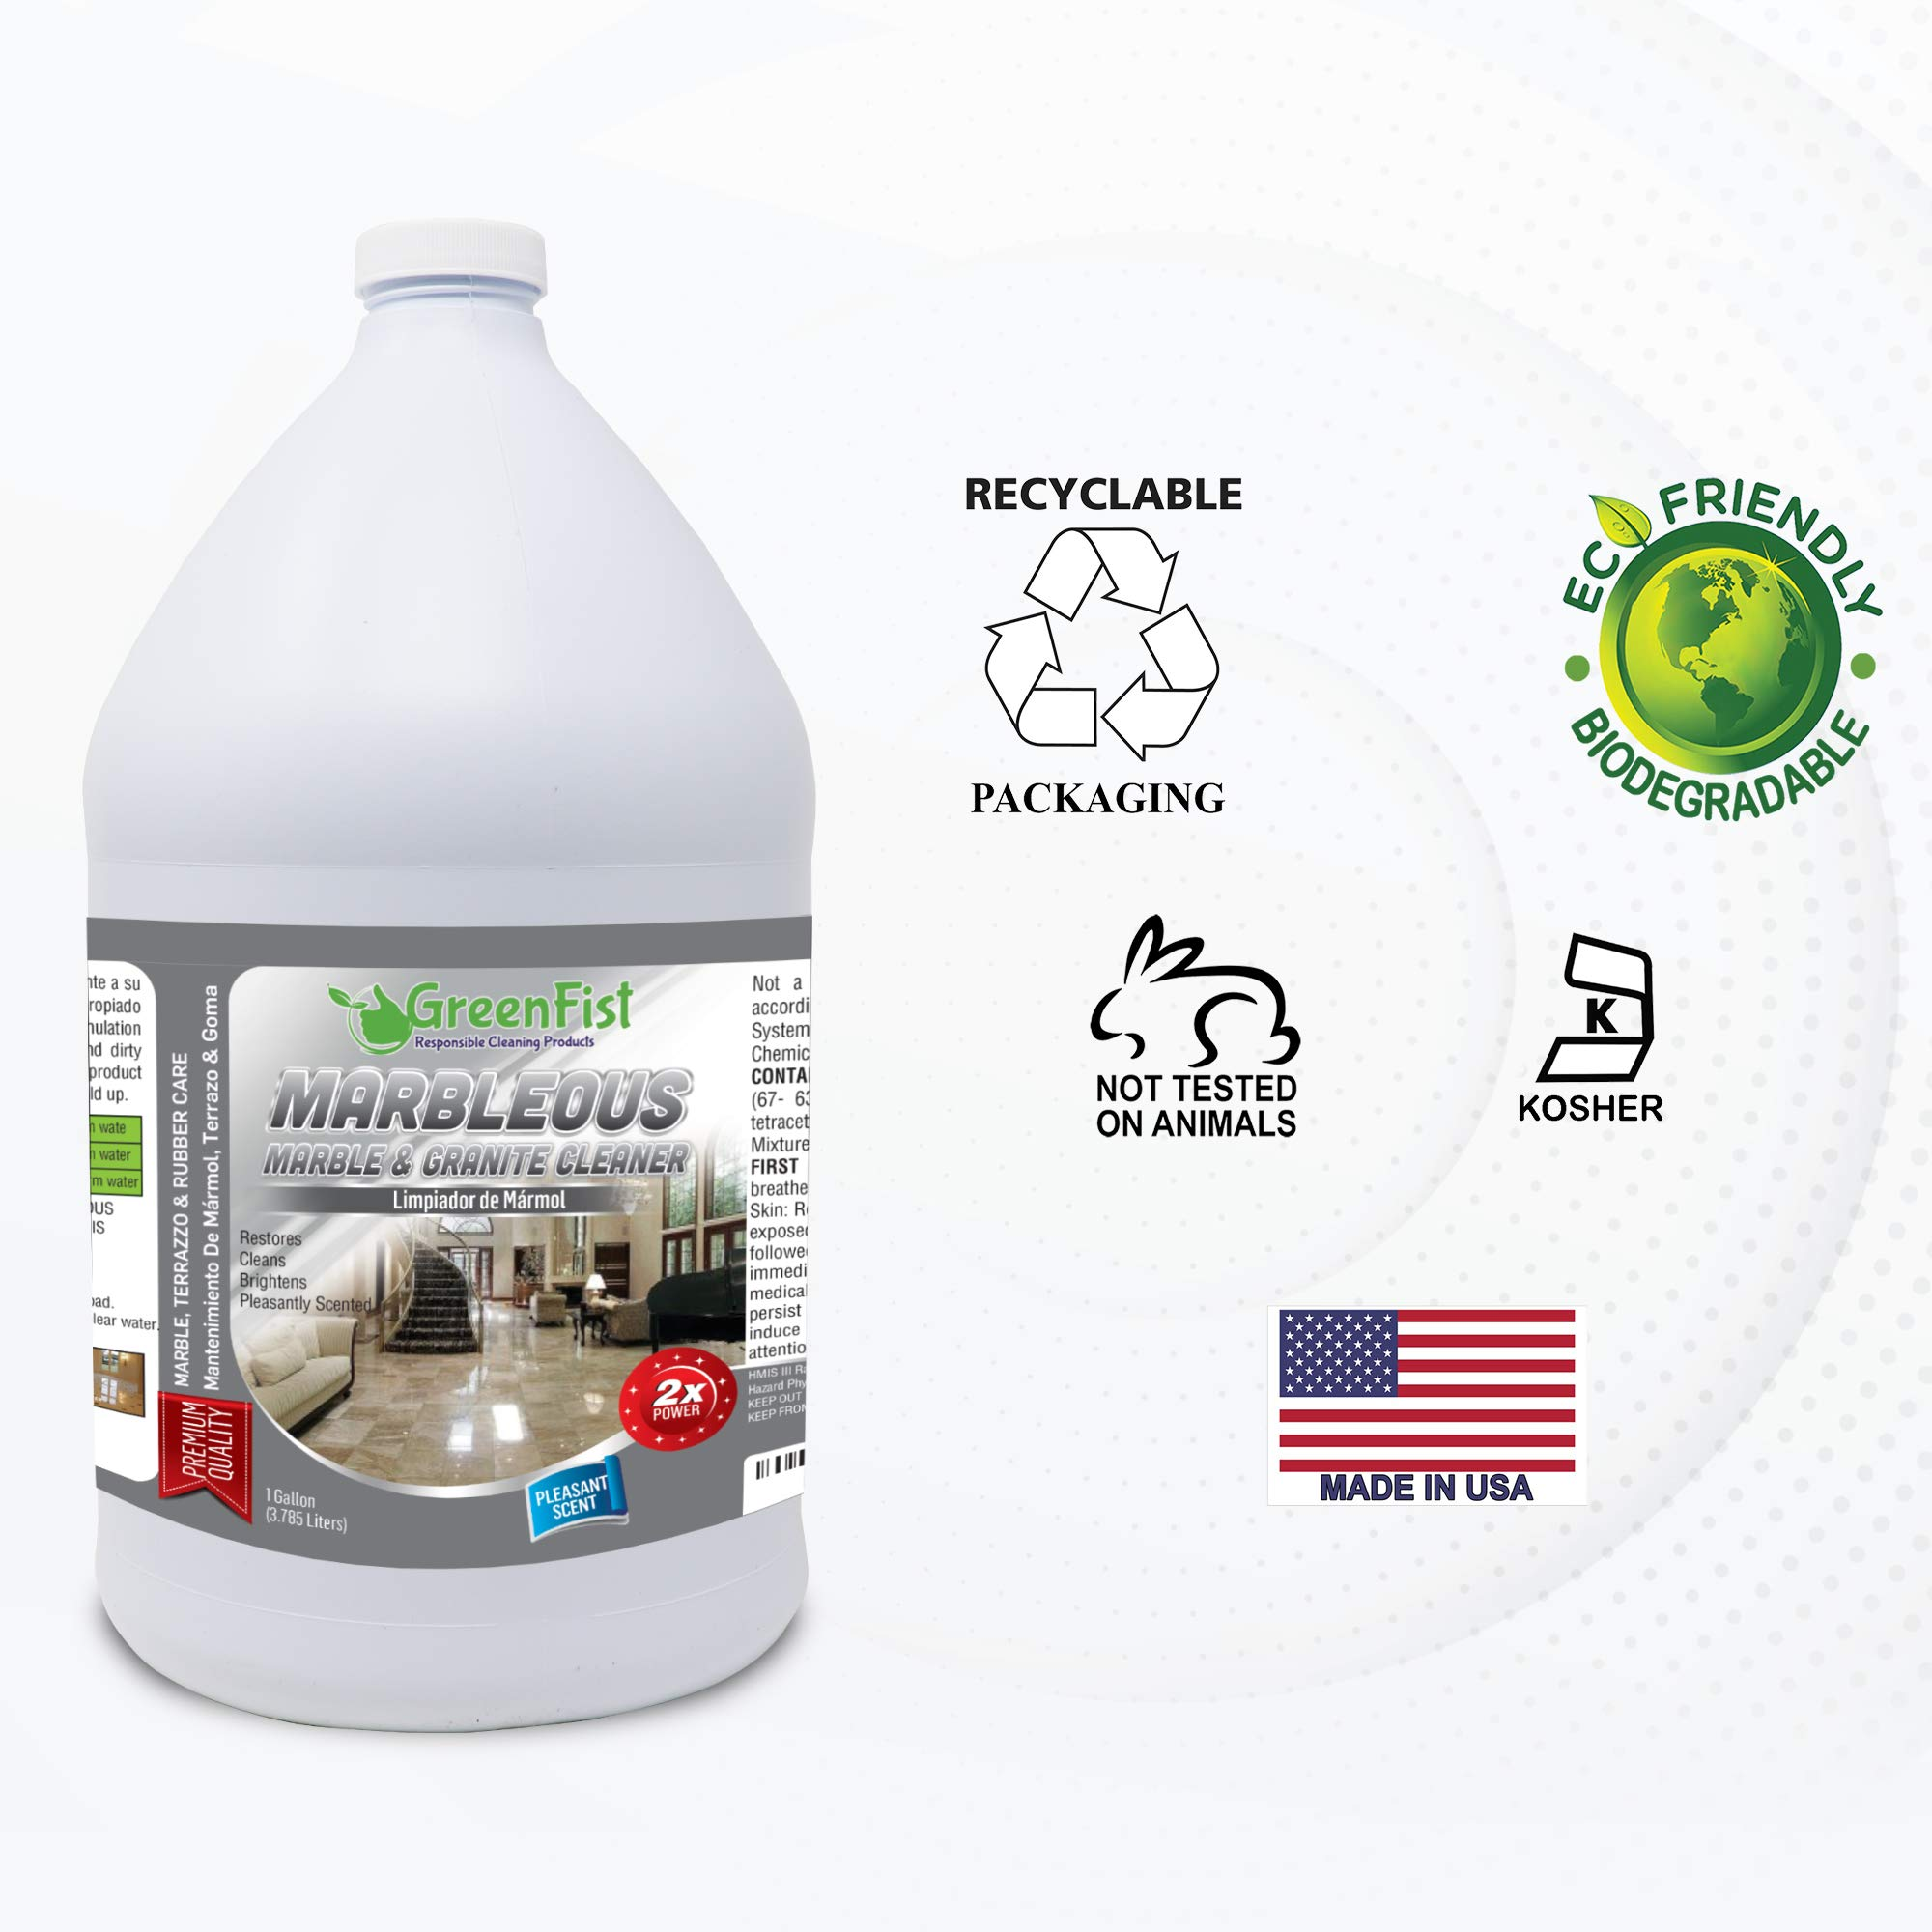 GreenFist Marbleous Marble Cleaner and Other Stone Surfaces Brightener & Restorer [Tile,Countertop,Porcelain,Lime-Stone,Ceramic,Granite,Brick,Vinyl] (1 Gallon) by GreenFist (Image #6)